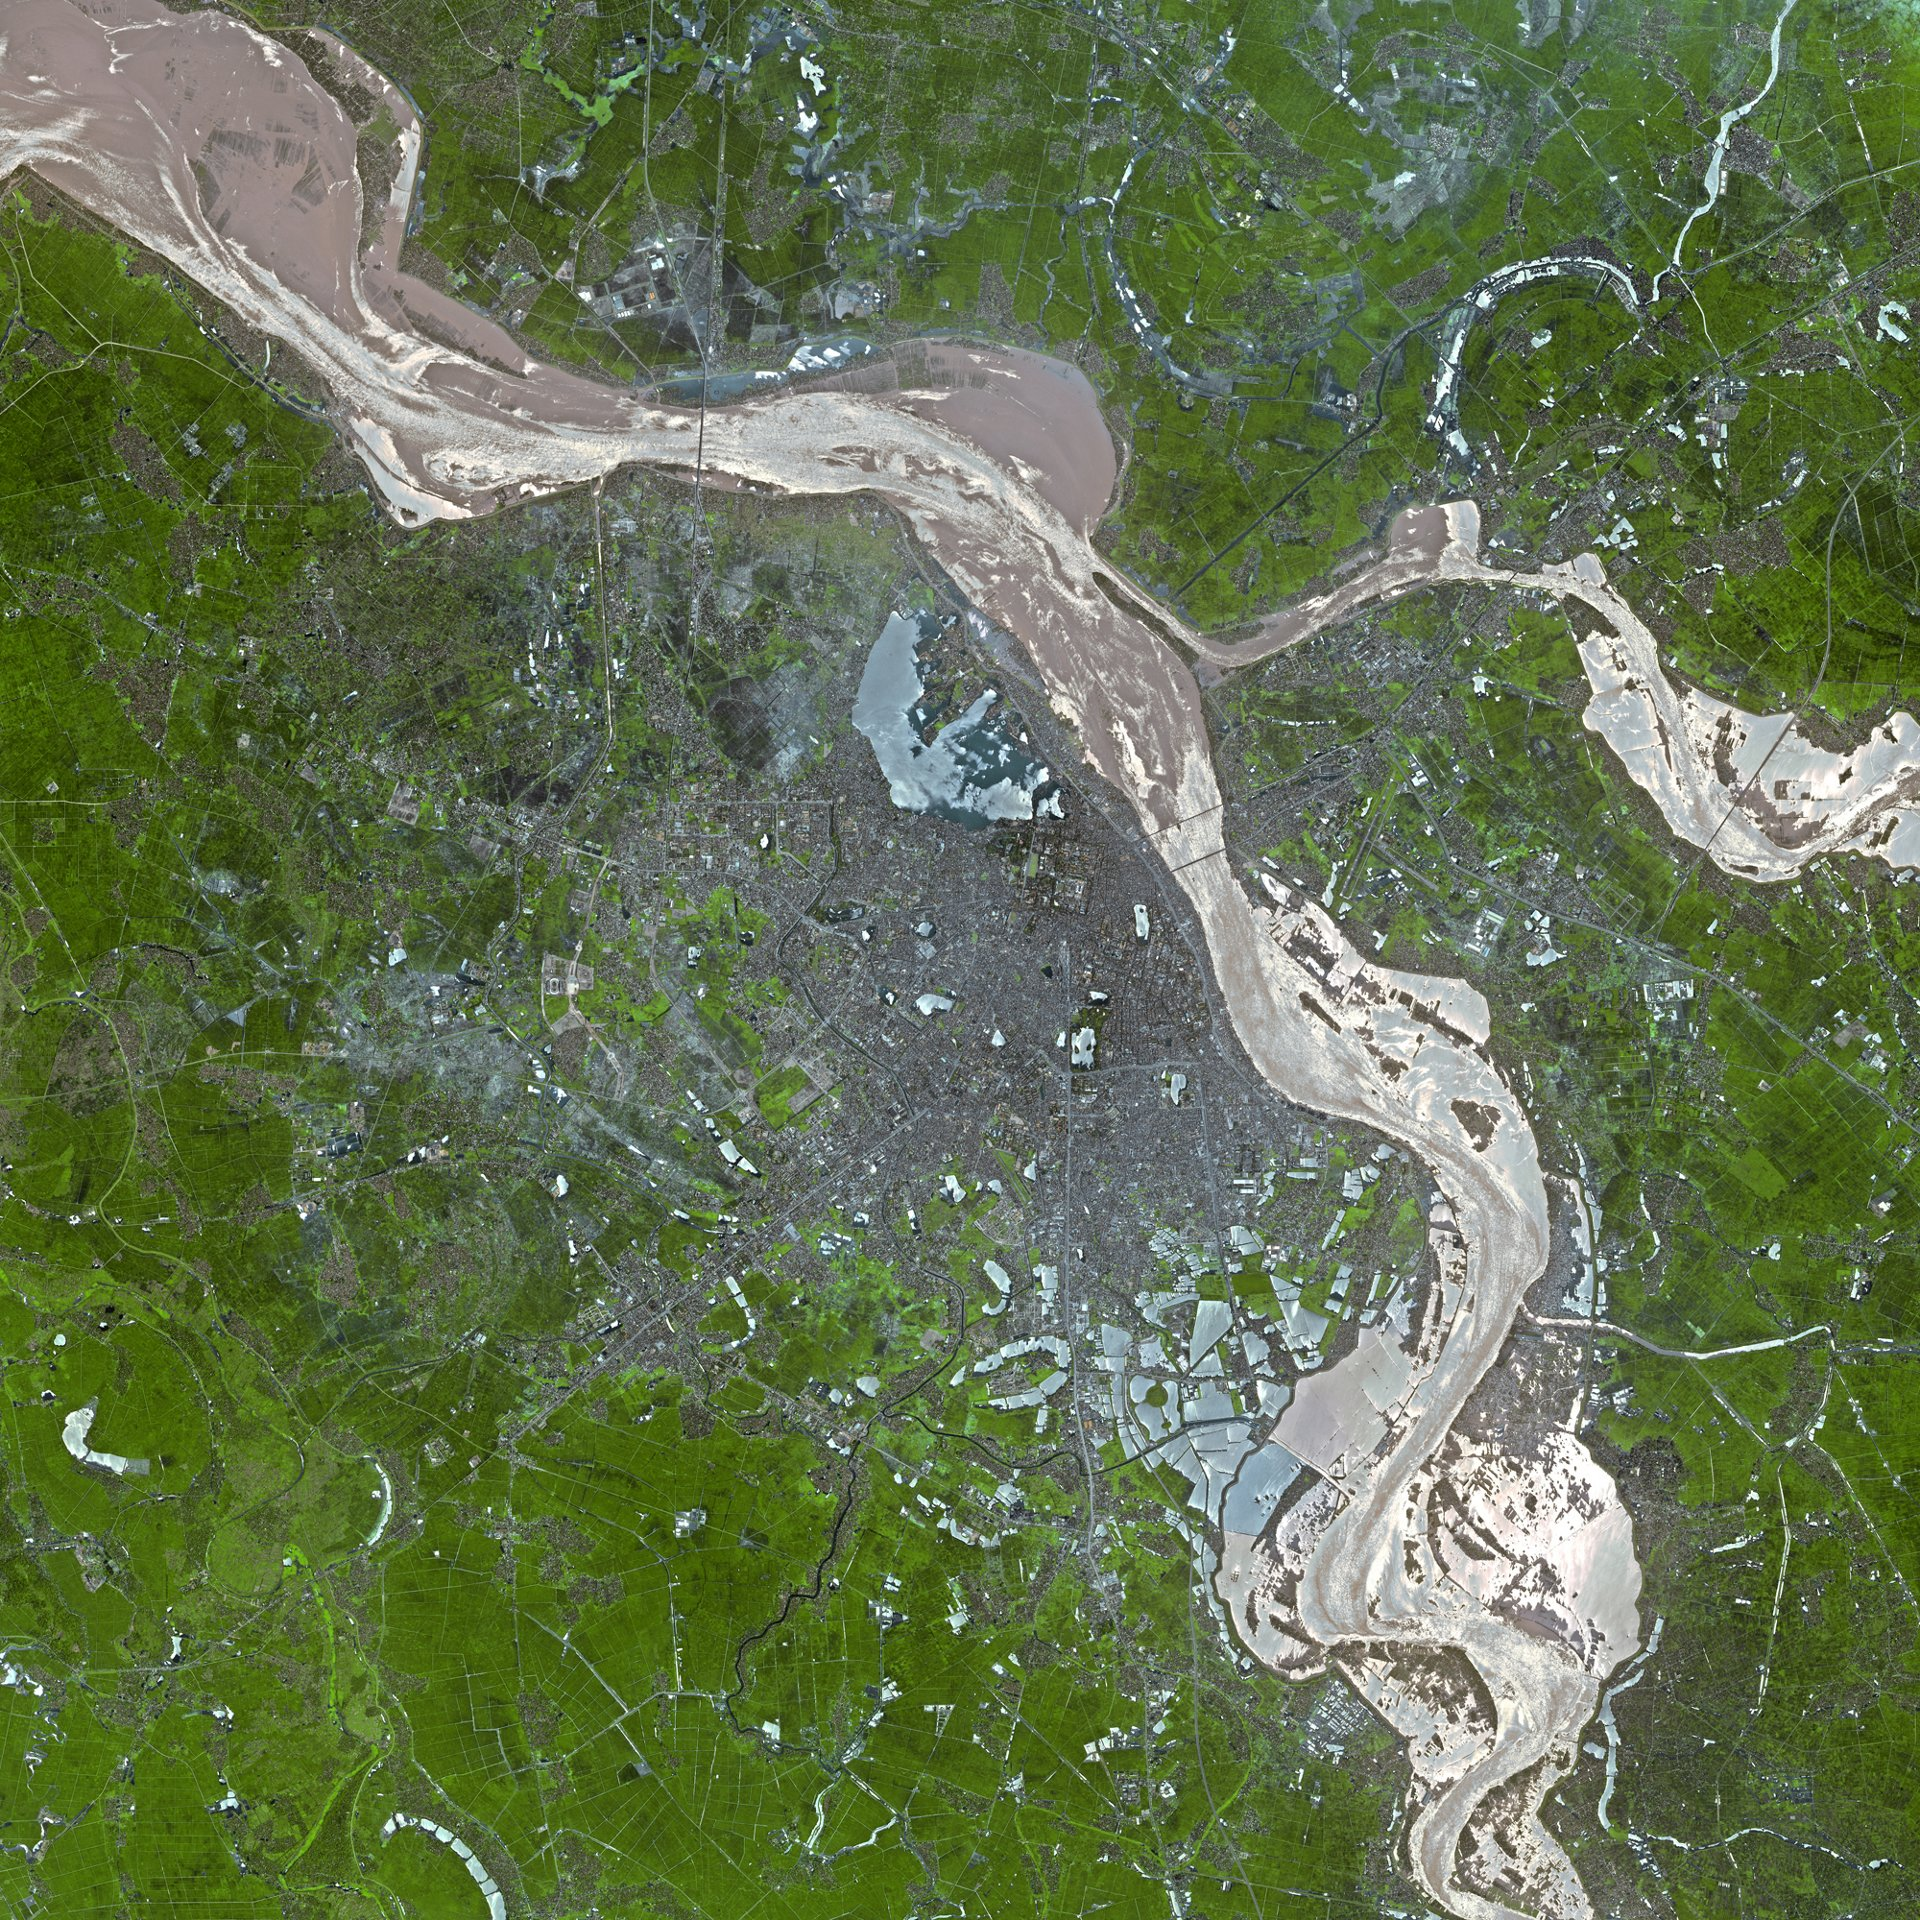 An example of the very-high-resolution imagery supplied by the Airbus-produced VNREDSat-1 Earth observation satellite.